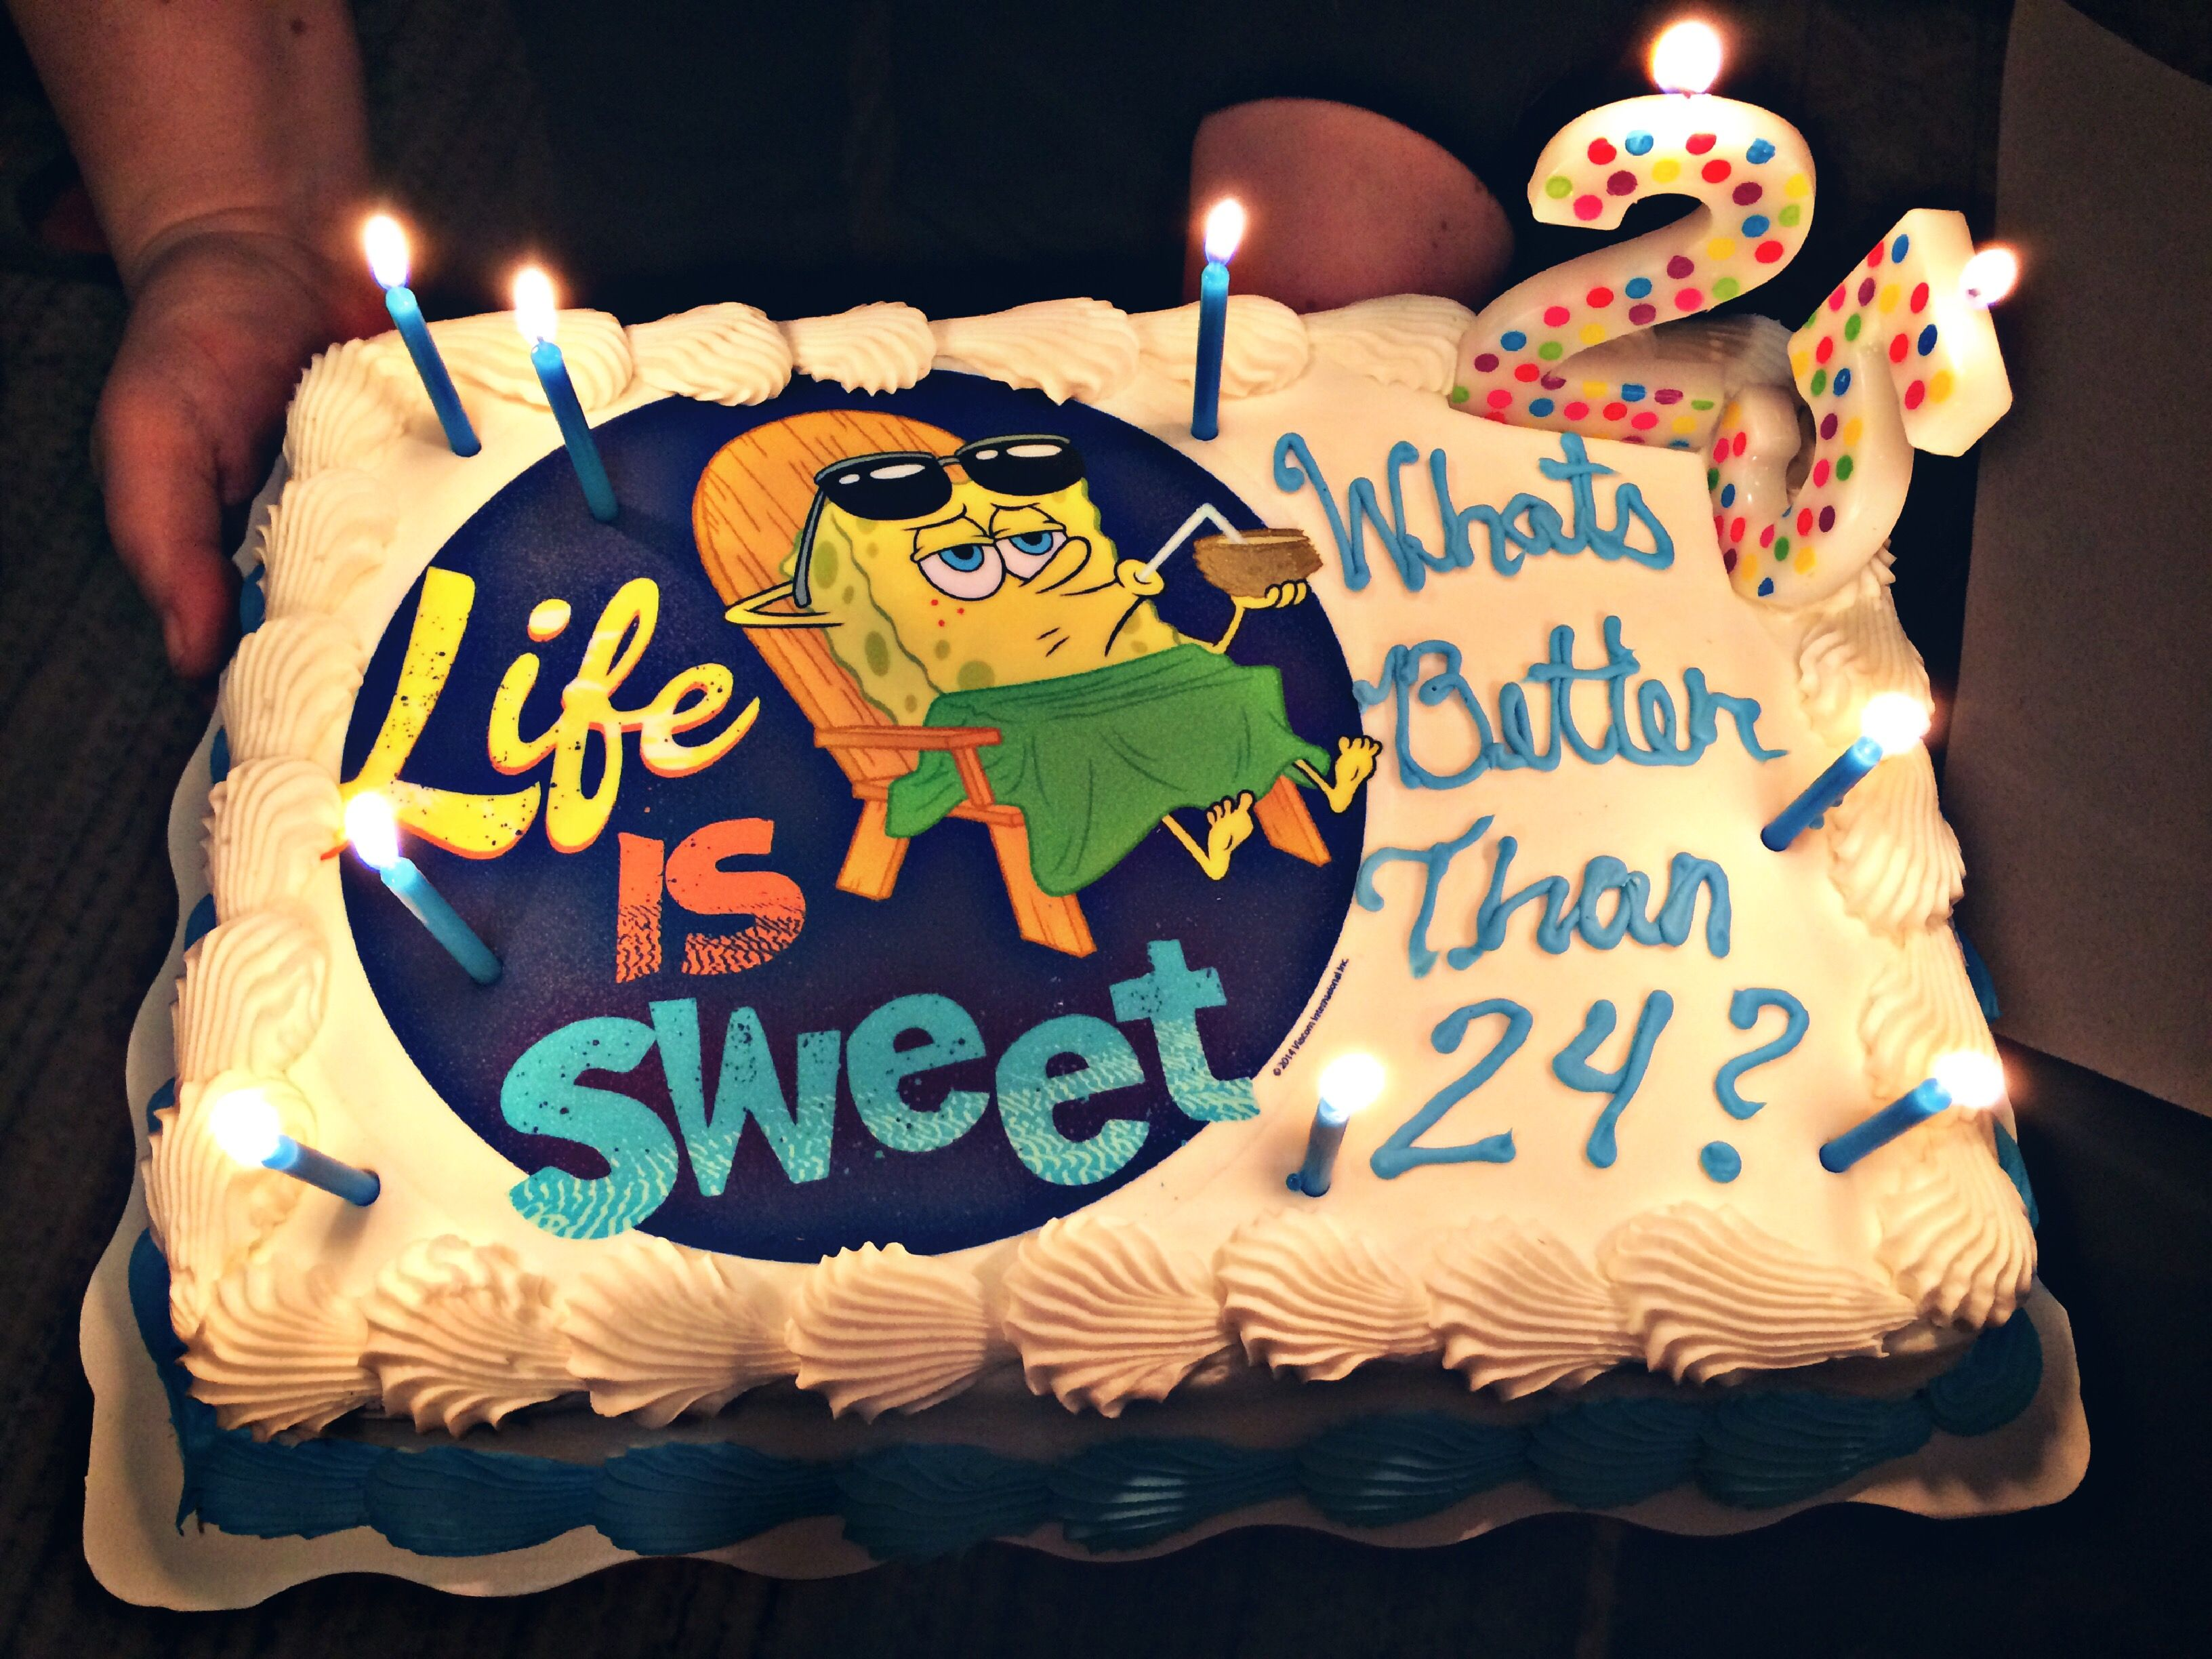 Spongebob Birthday Cake Whats Better Than 24 25th